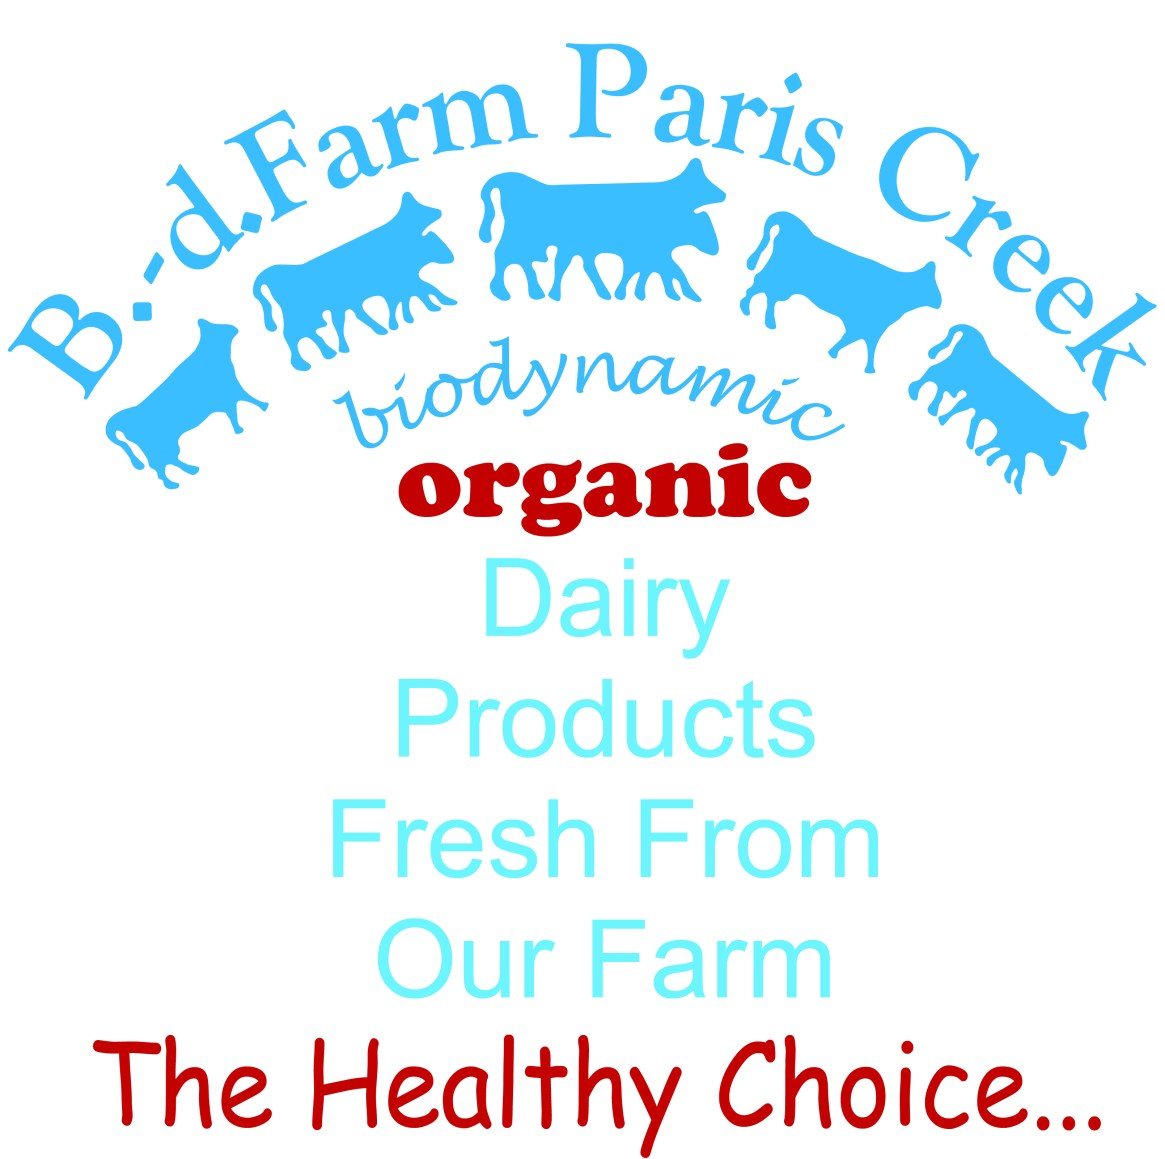 Full Logo B. d. Farm Paris Creek High Resolution 300dpi